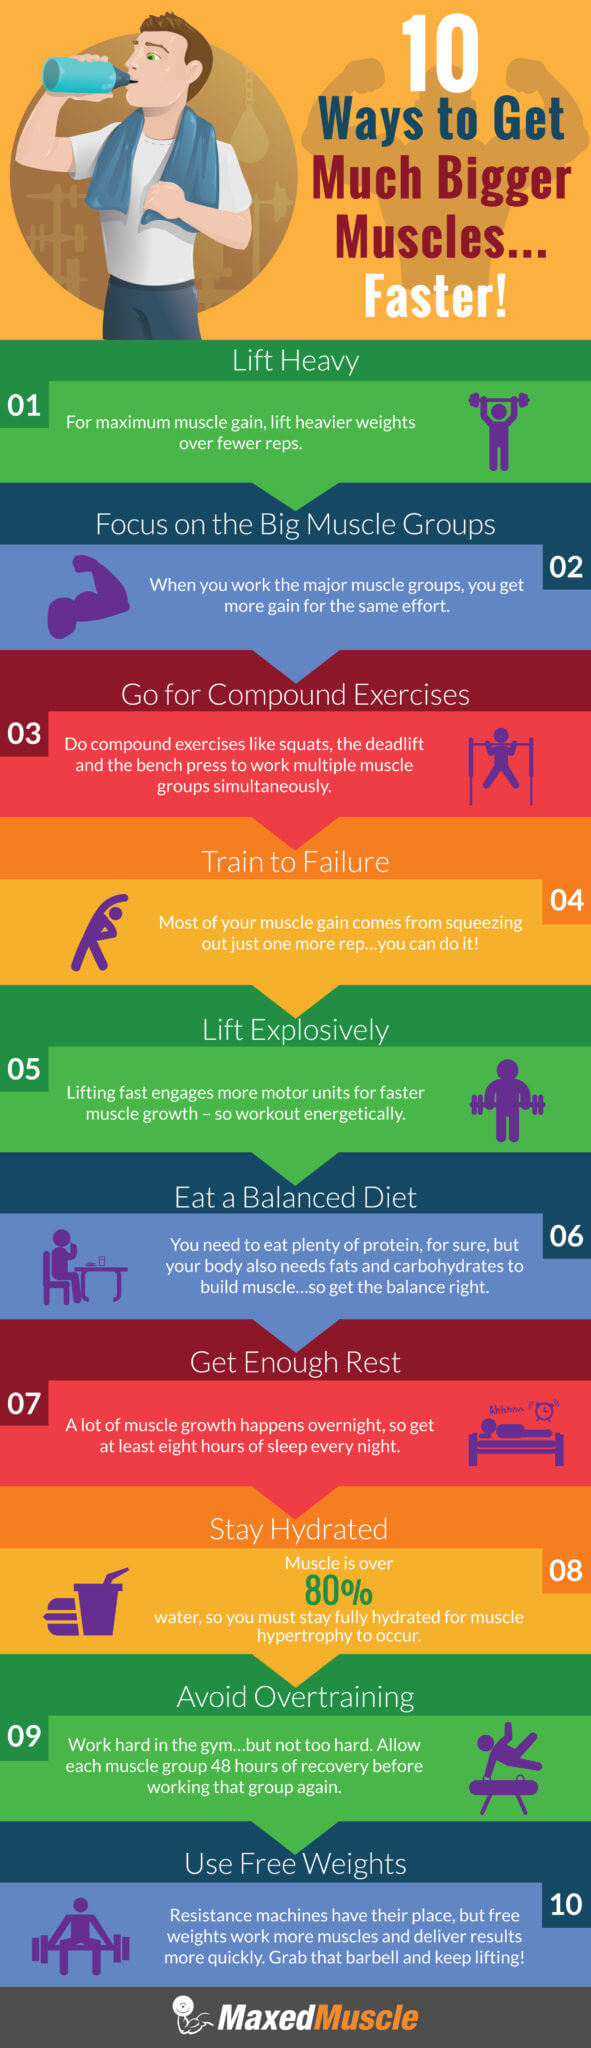 10 Ways to Get Much Bigger Muscles, Faster!